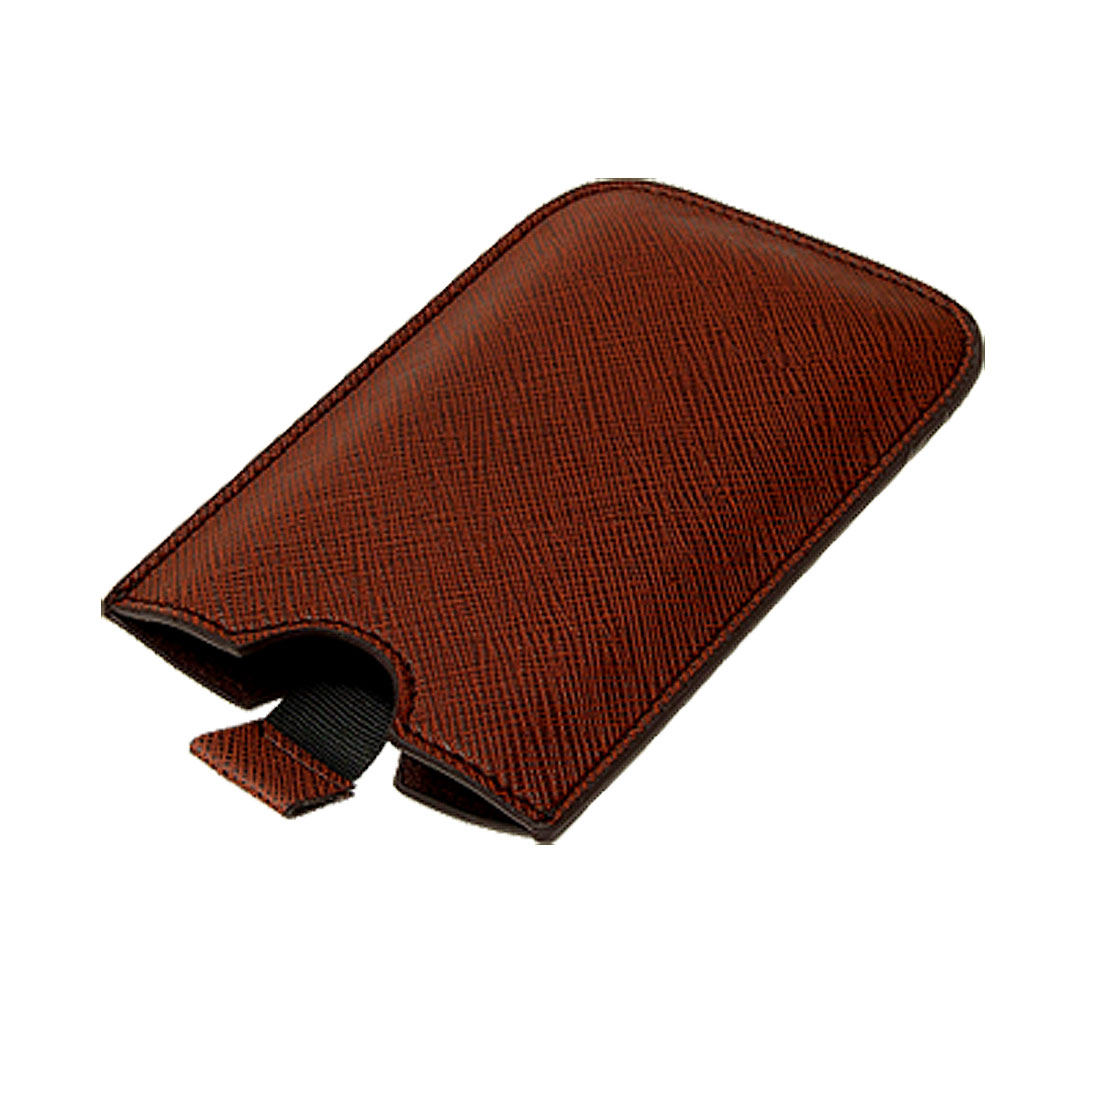 Leather Sleeve Case Cover Pouch Brown for Apple iPhone 3G